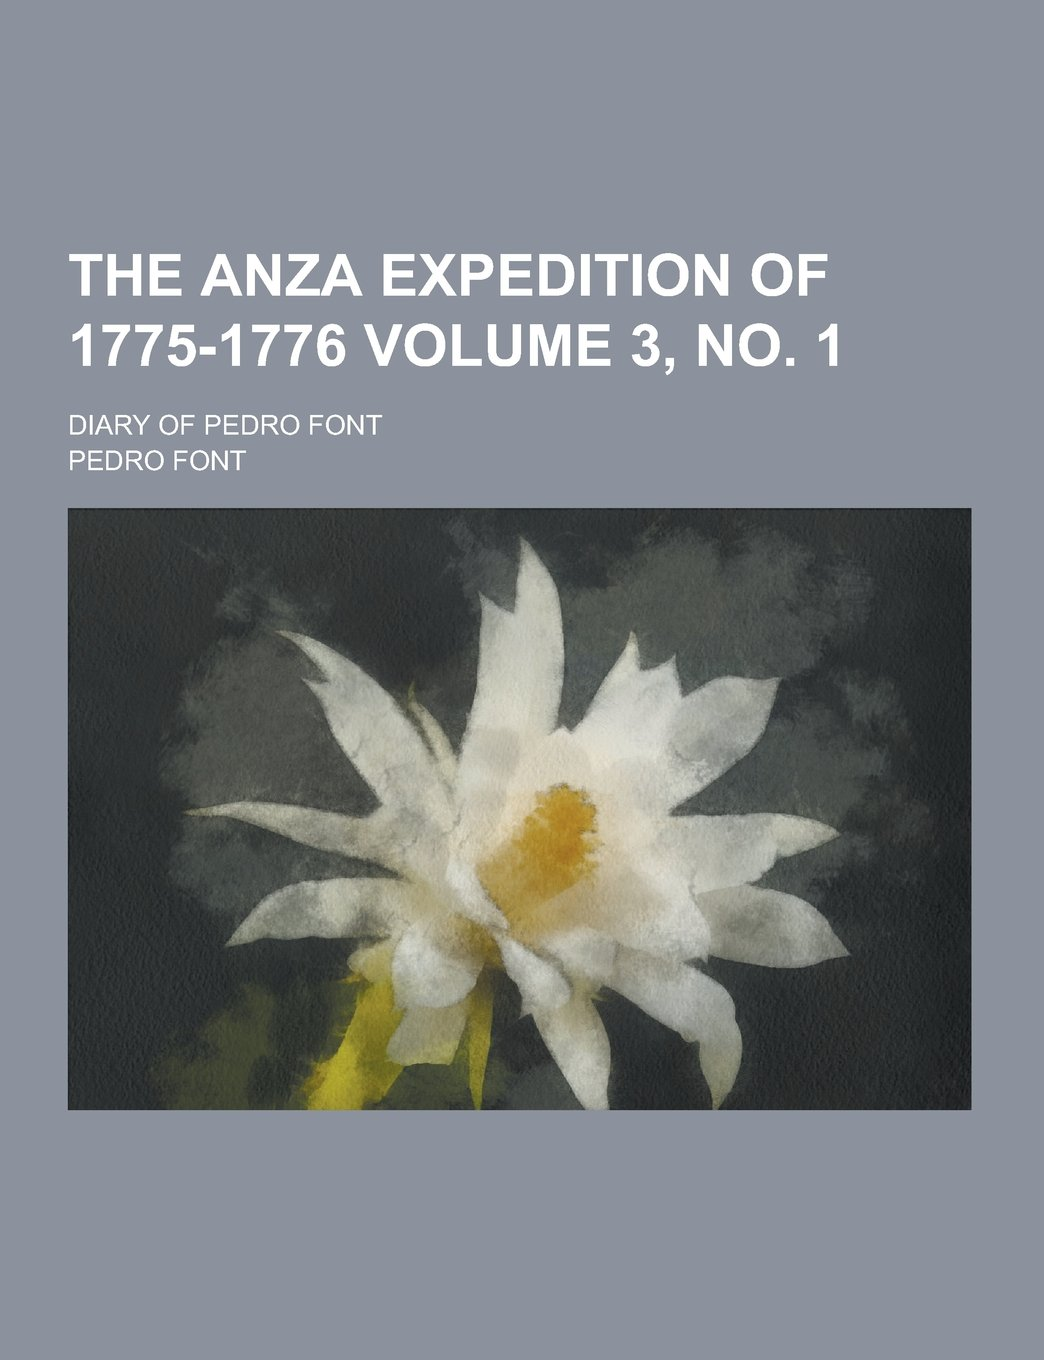 Amazon com: The Anza Expedition of 1775-1776